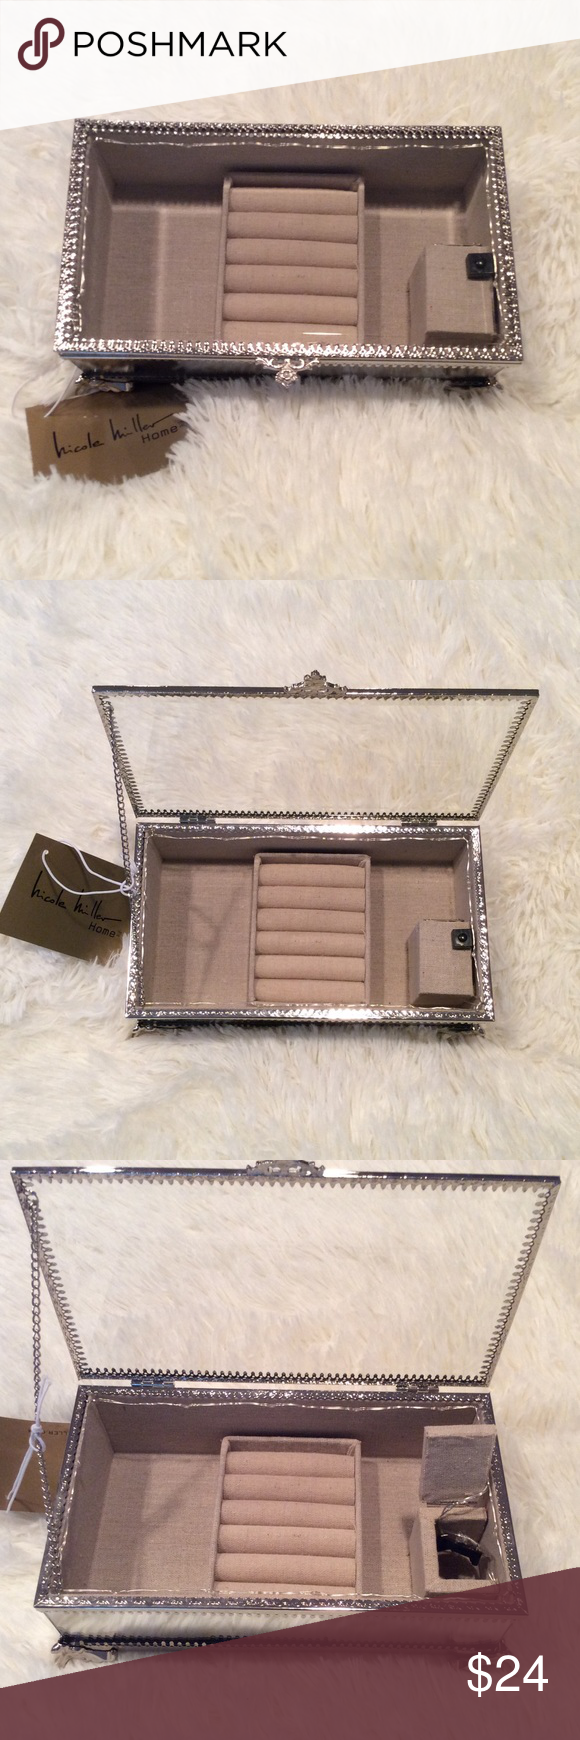 Nicole Miller Jewelry Box Best Nicole Miller Jewelry Box With Mirrored Sides Nwt Design Decoration